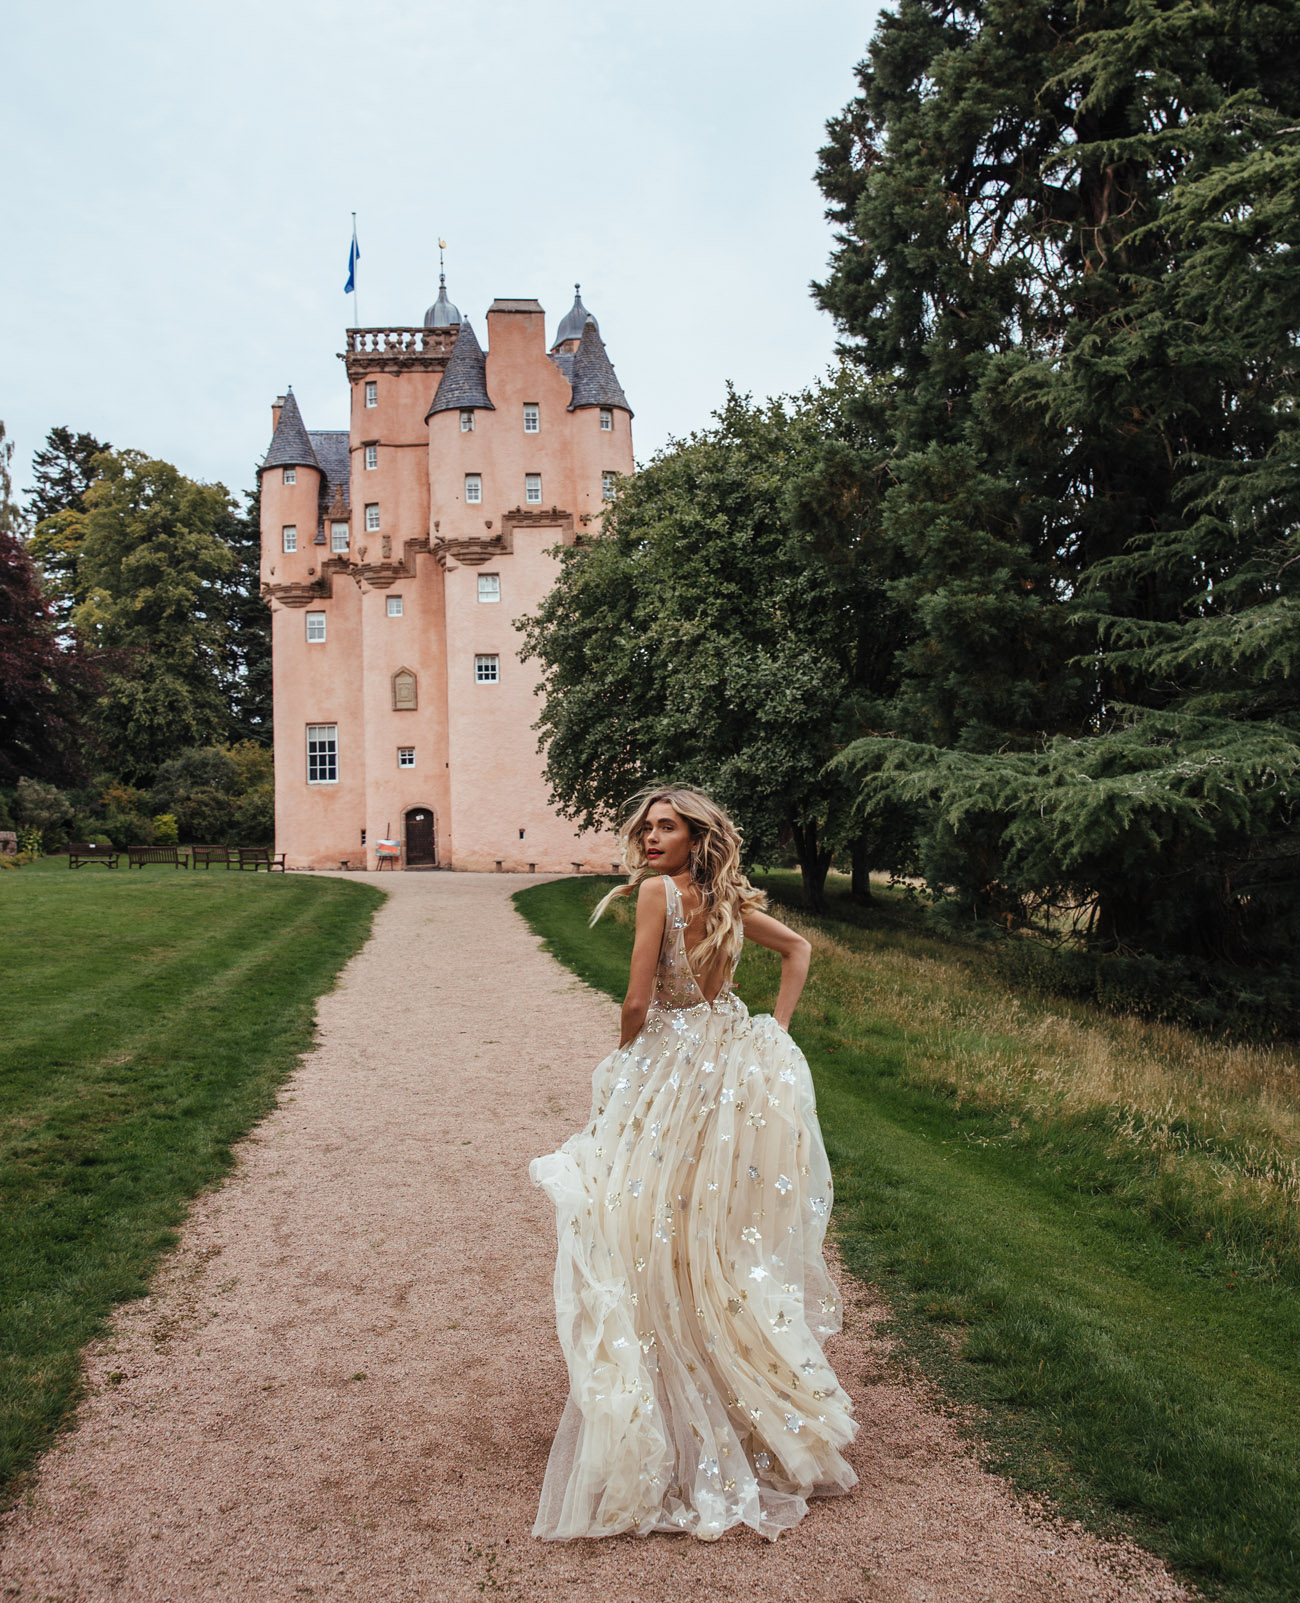 Craigievar Castle Pink Castle for Your Wedding